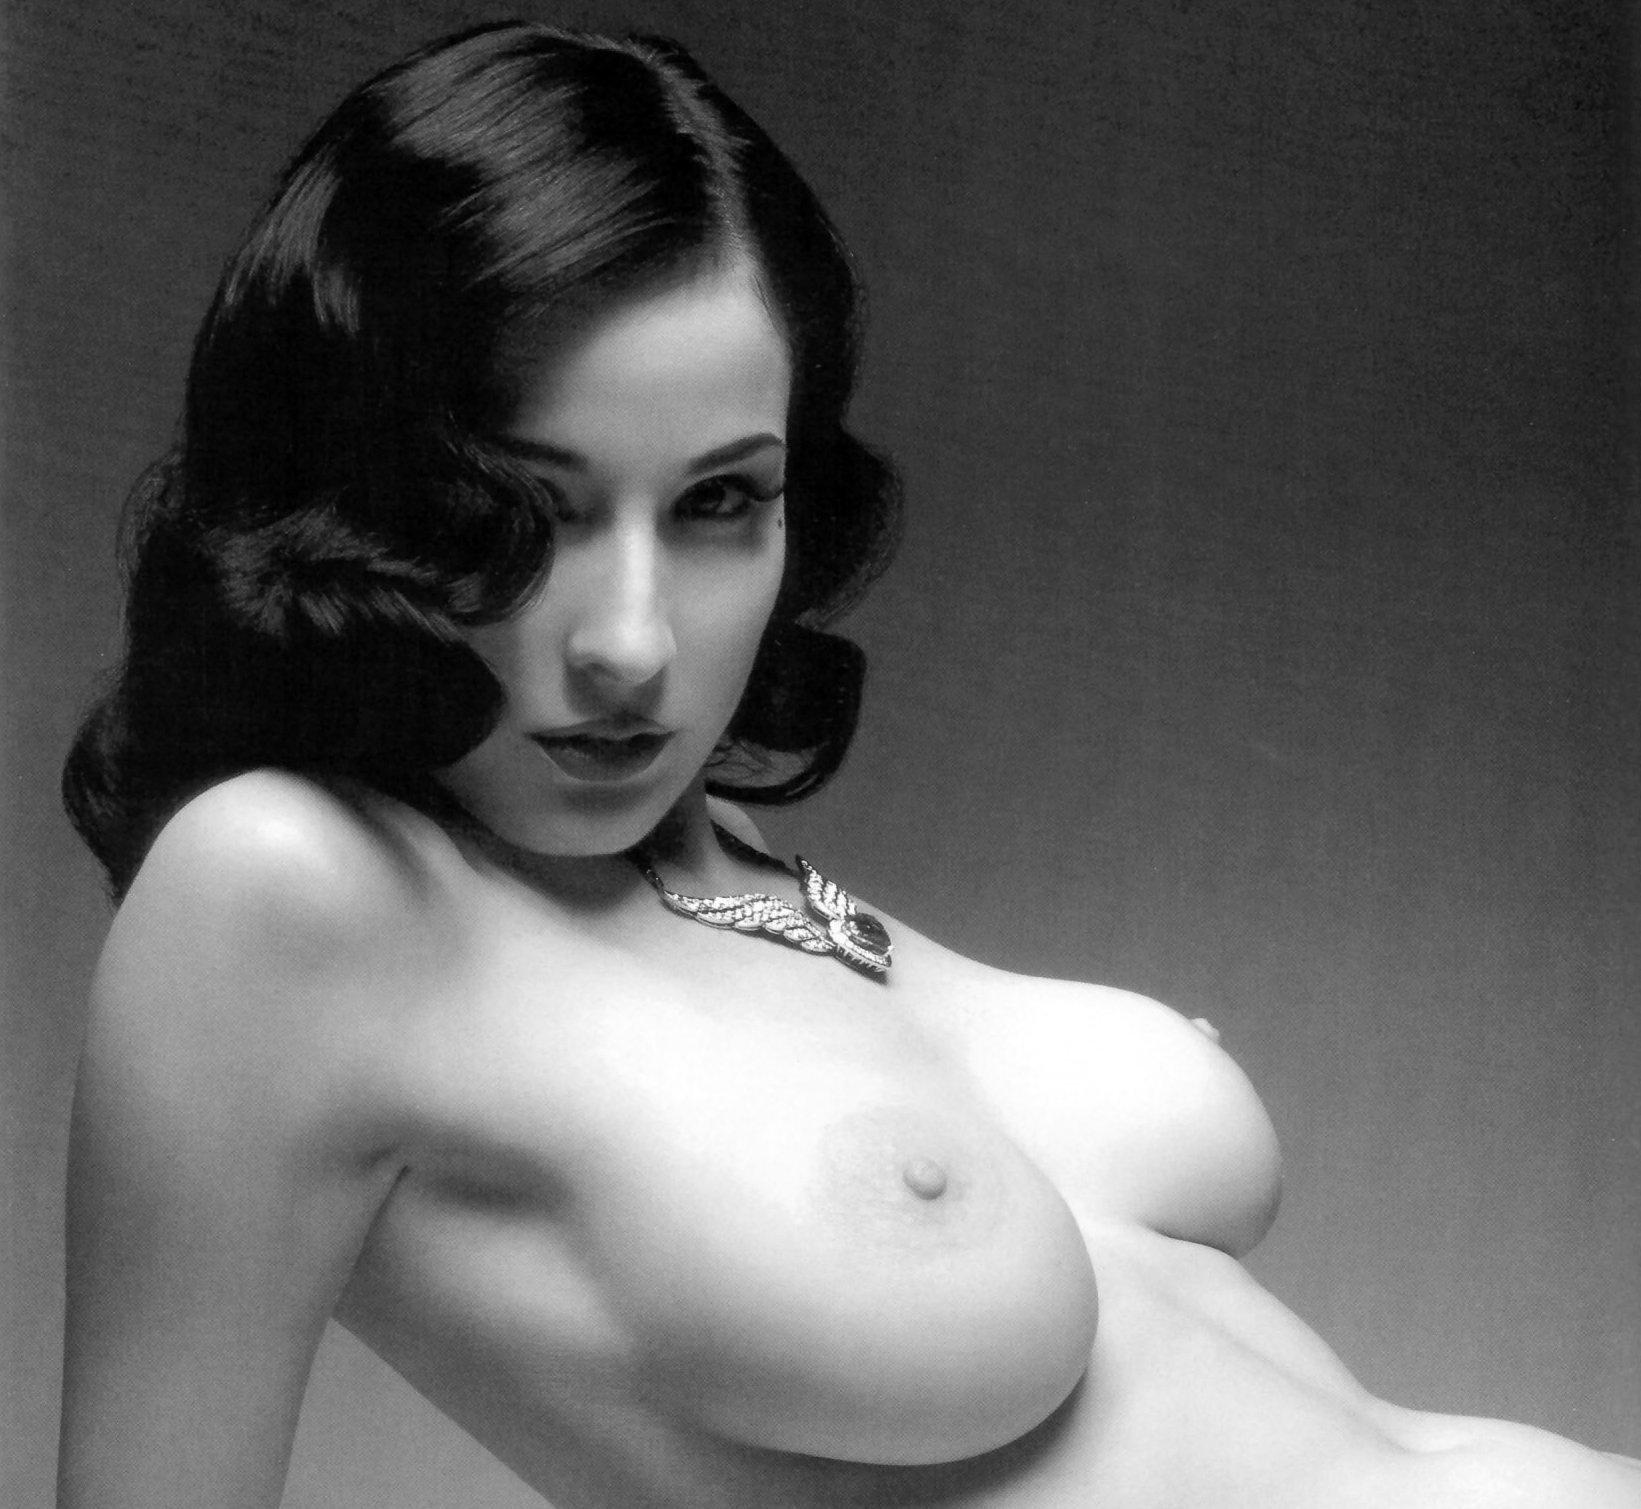 Naked Lady of the Week: Dita Von Teese | Uncouth Reflections: https://uncouthreflections.com/2014/07/25/naked-lady-of-the-week-dita-von-teese/